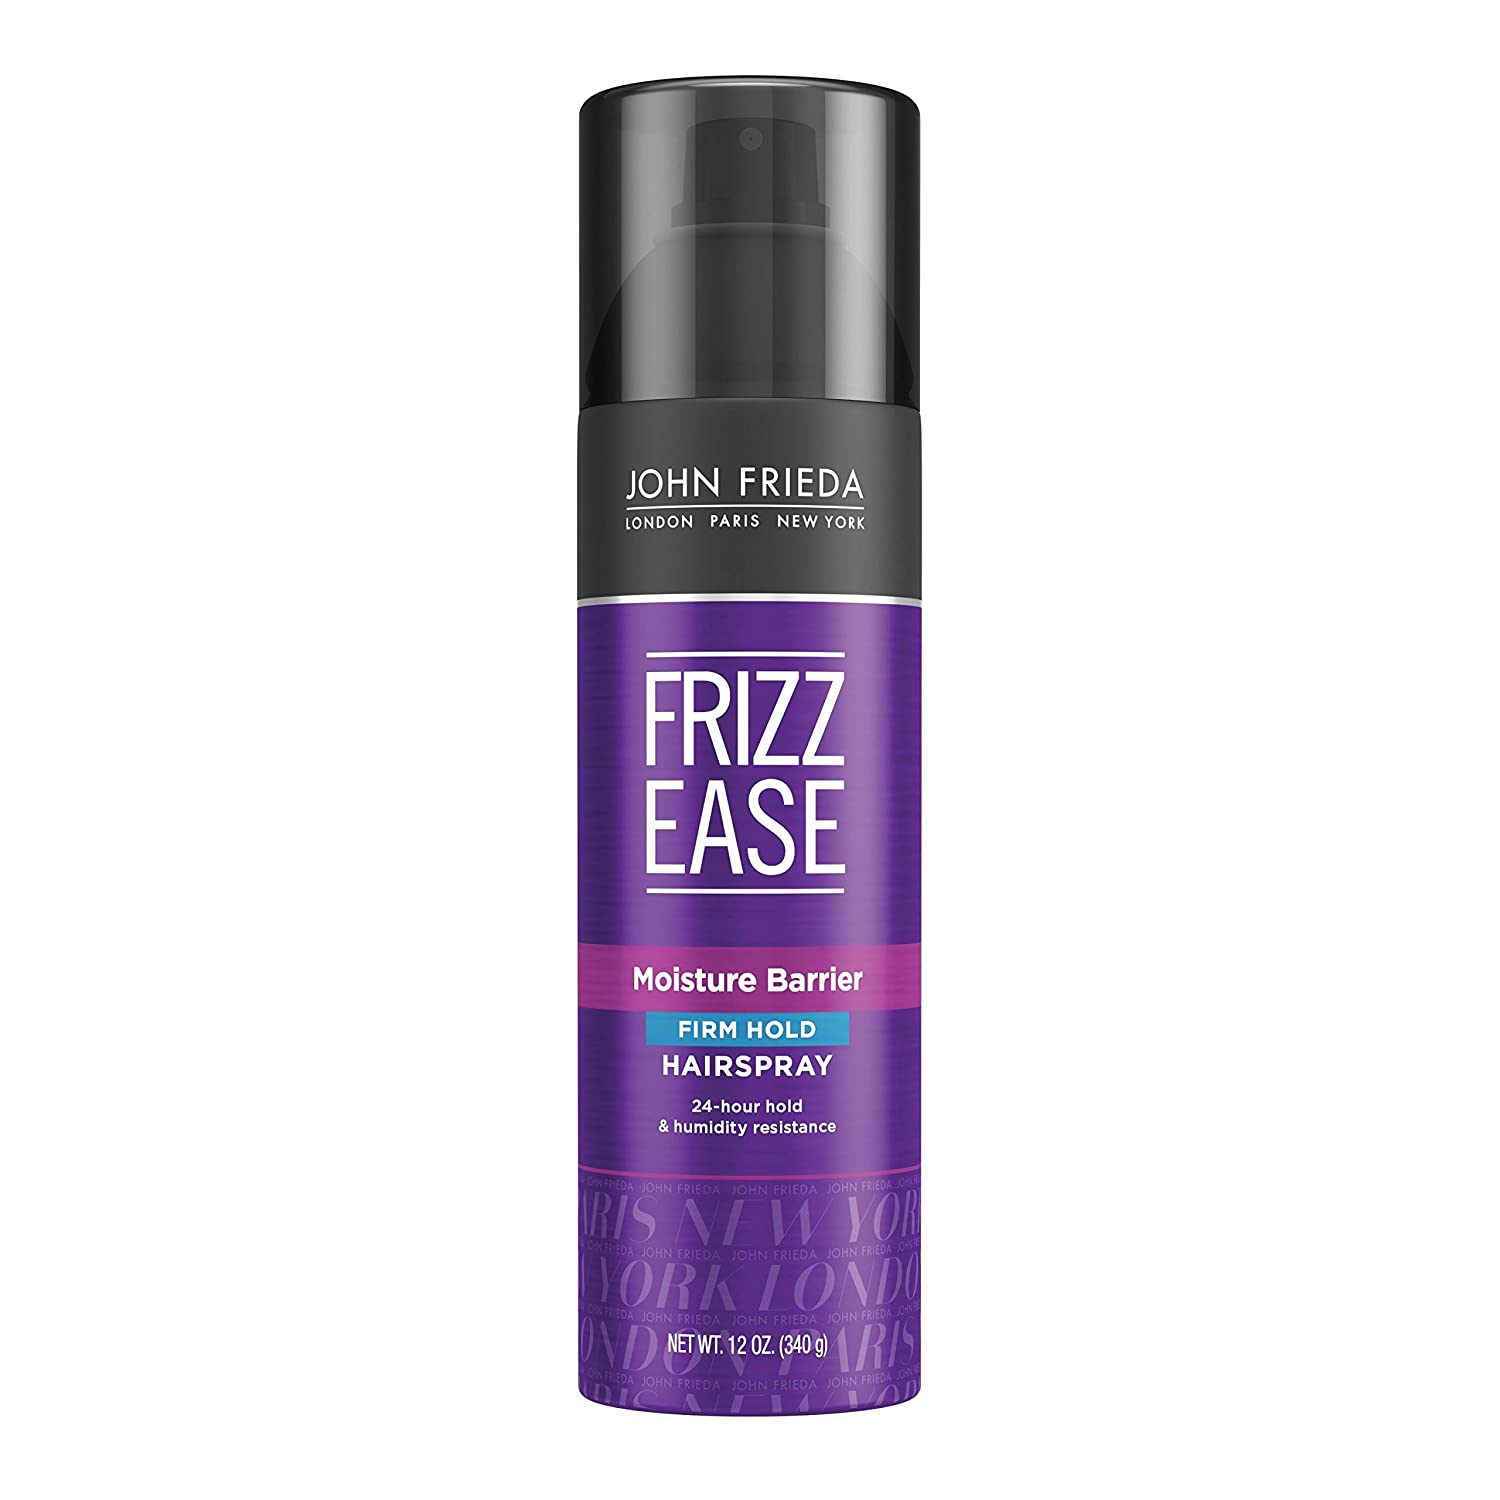 John Frieda Frizz Ease Hairspray Moist.Barrier 12 Ounce (354ml) (6 Pack)